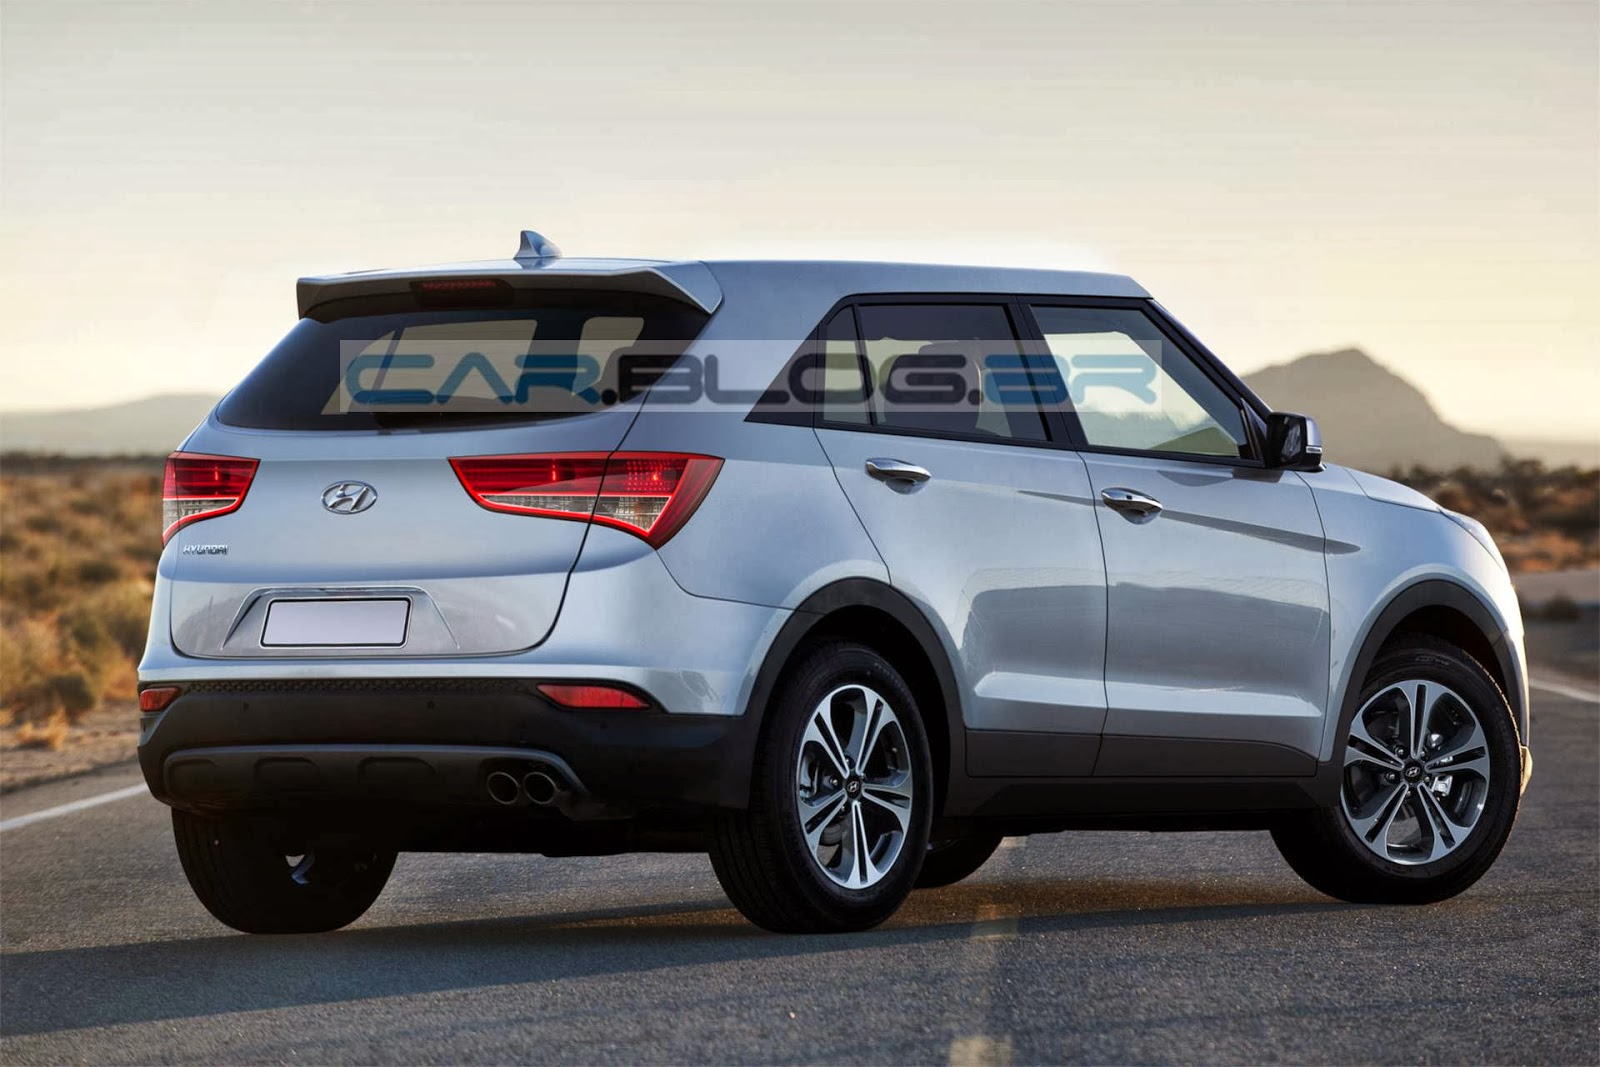 Hyundai HB20 SUV - concorrente do EcoSport